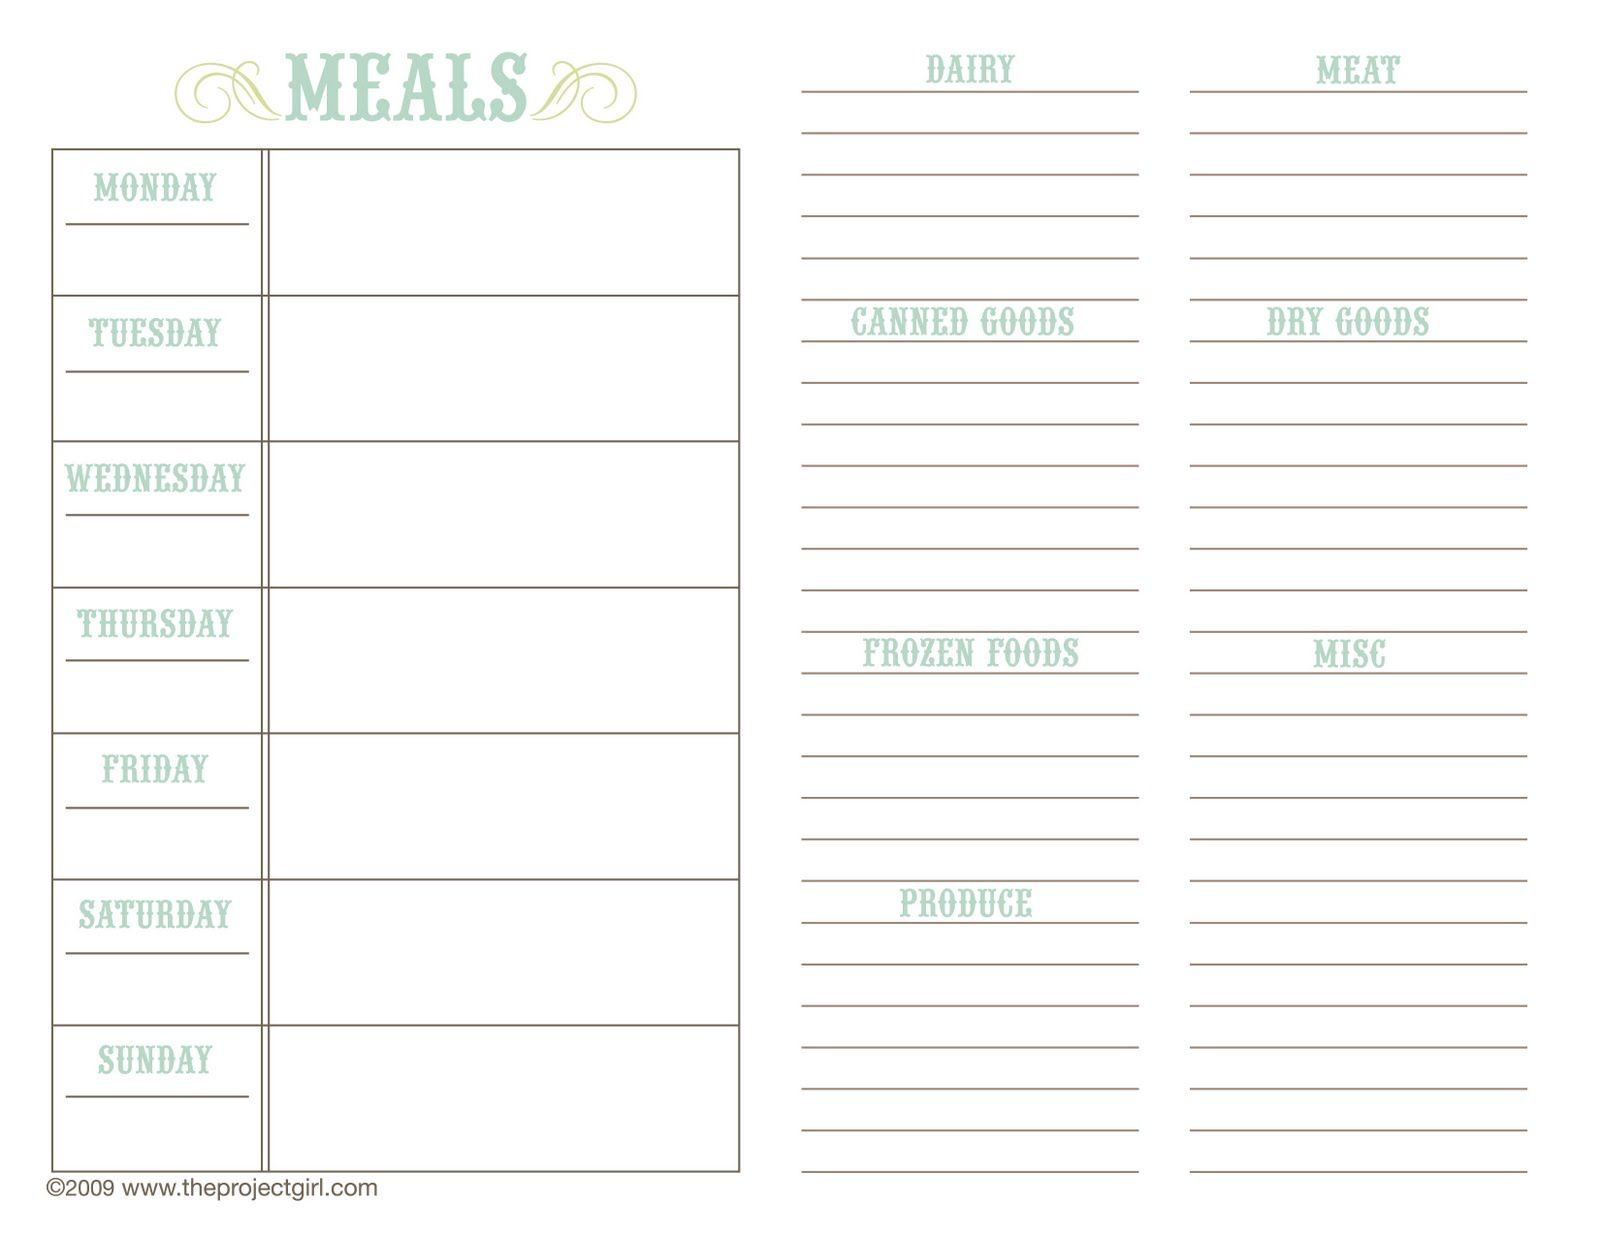 Free Family Recipe Templates | Above Templates Available For Download @ The  Project Girl. Meal Planning ...  Menu Planner Template Printable